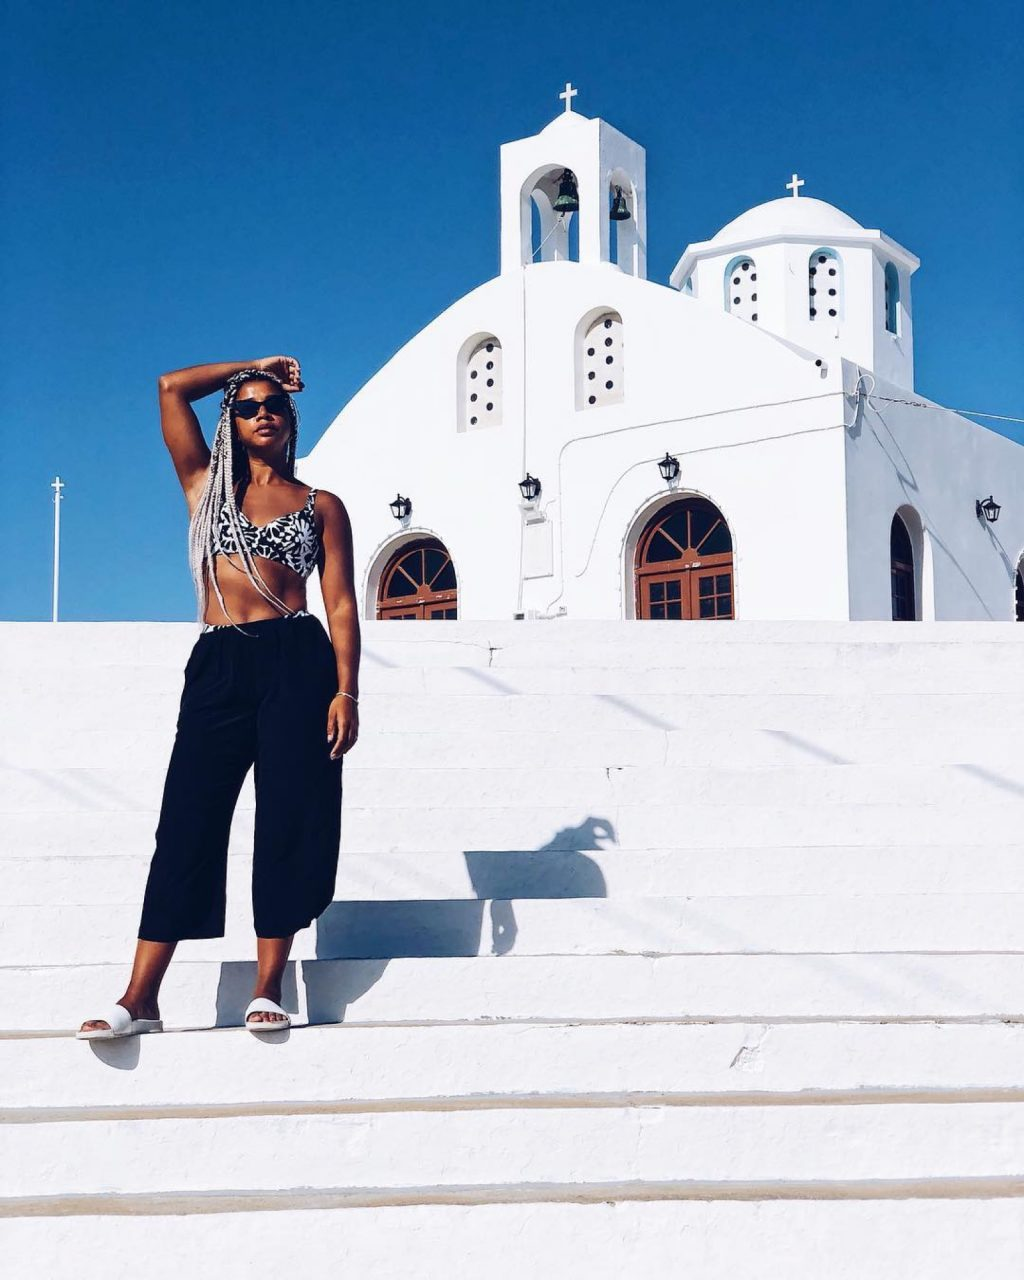 Sun Worship and Travel Inspo – What Caught Our Eye on Instagram This Week